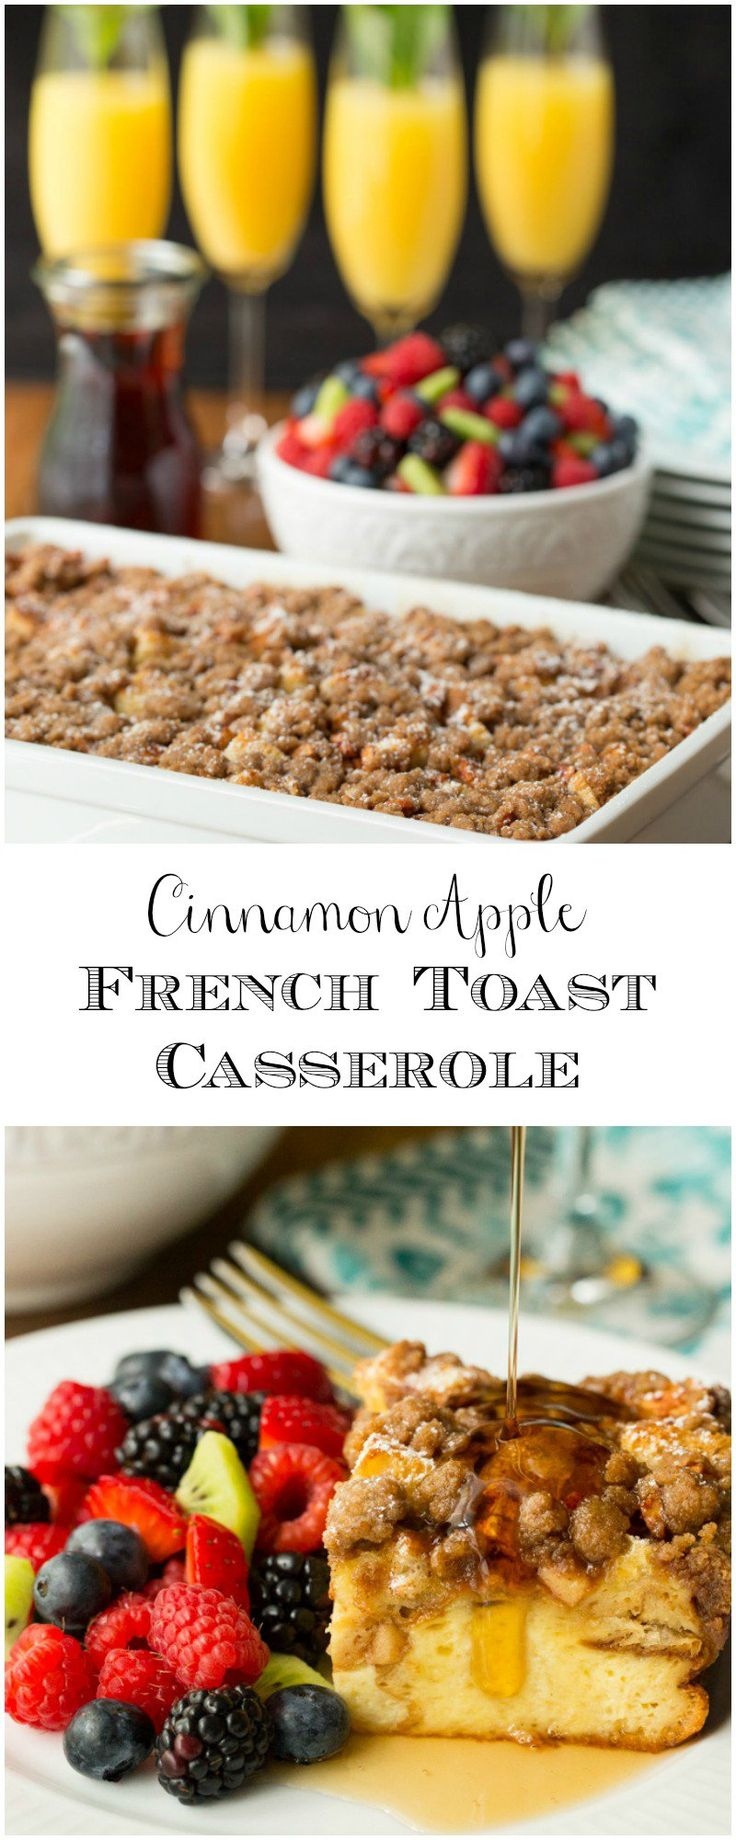 Cinnamon Apple French Toast Casserole - crazy delicious overnight casserole. Prep it at night and in the morning, breakfast is easy peasy! thecafesucrefarine.com